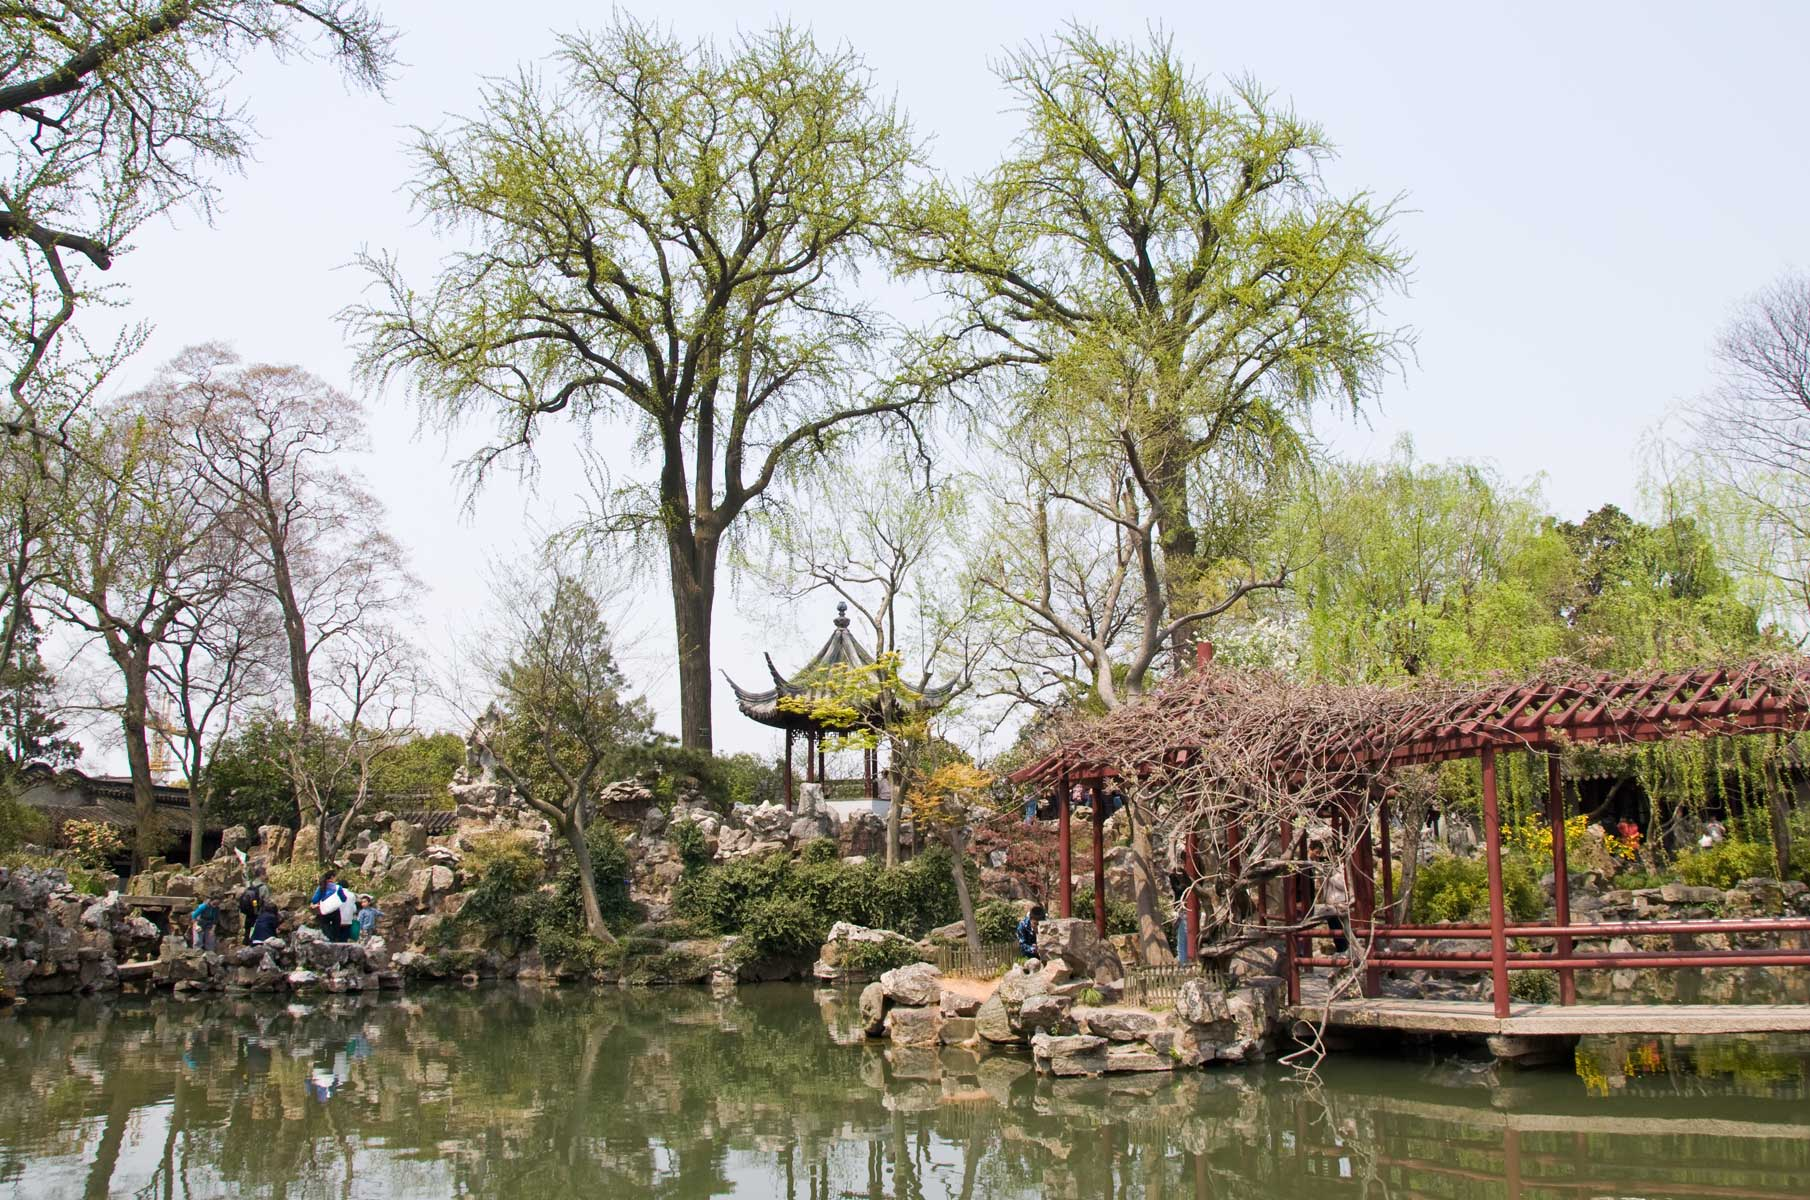 Liu Garten in Suzhou, China